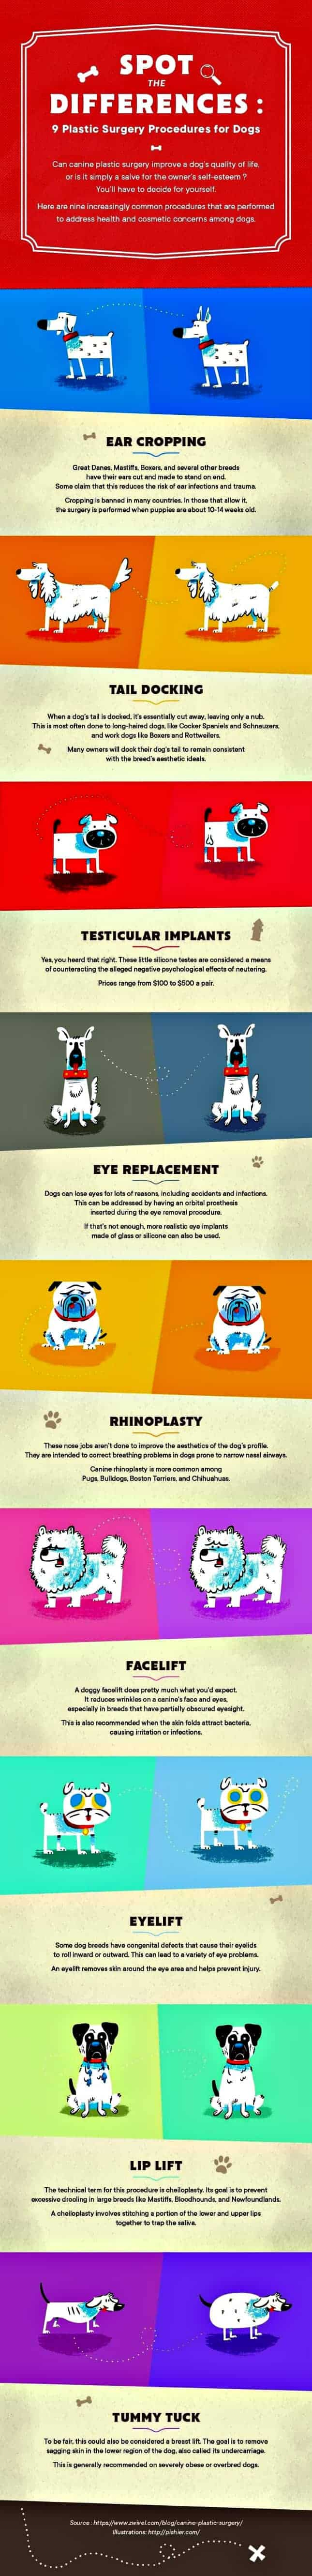 Dog plastic surgery infographic